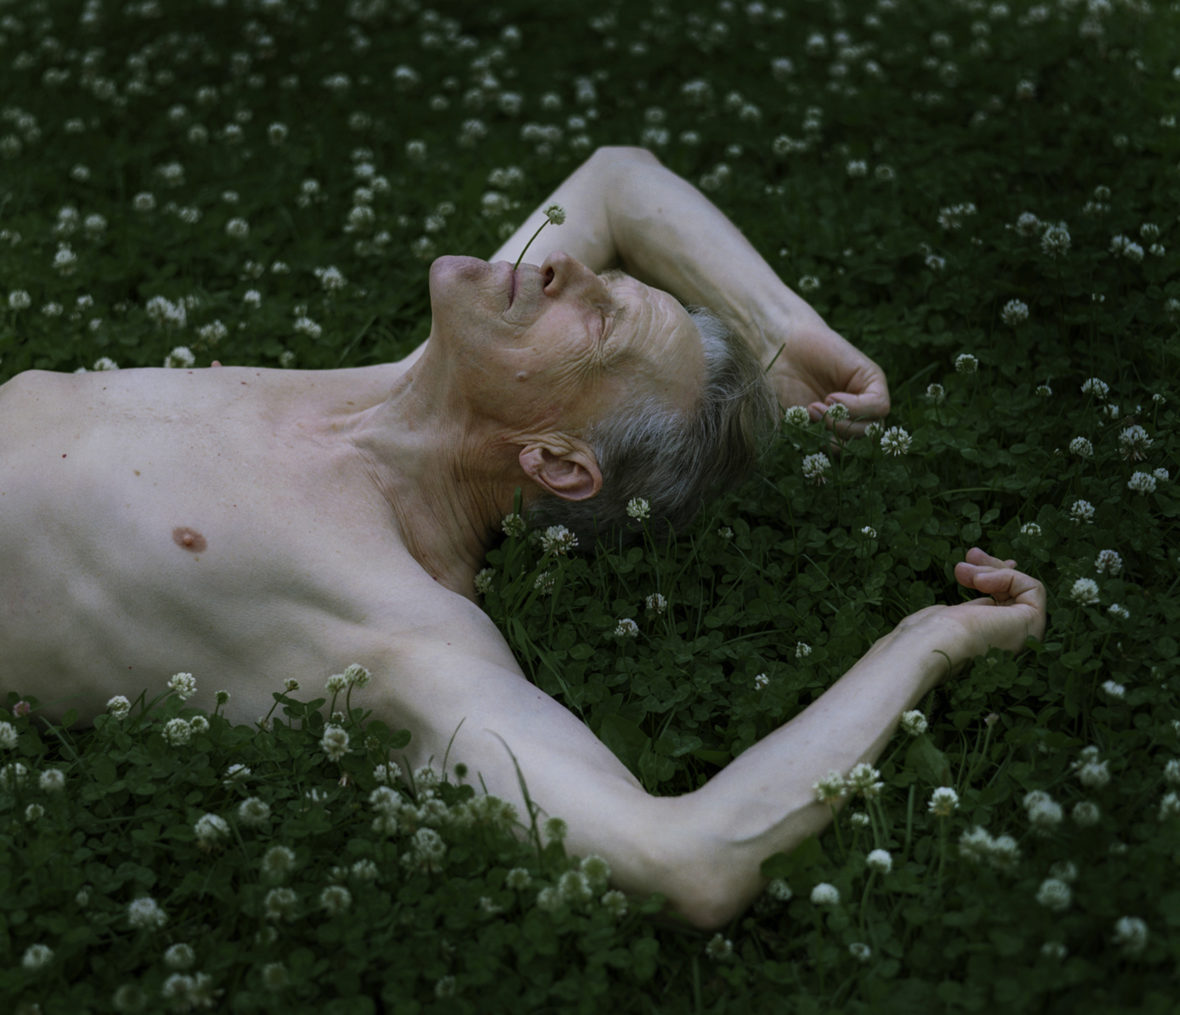 Apilataivas, 2008 / Bed of clovers, 2008